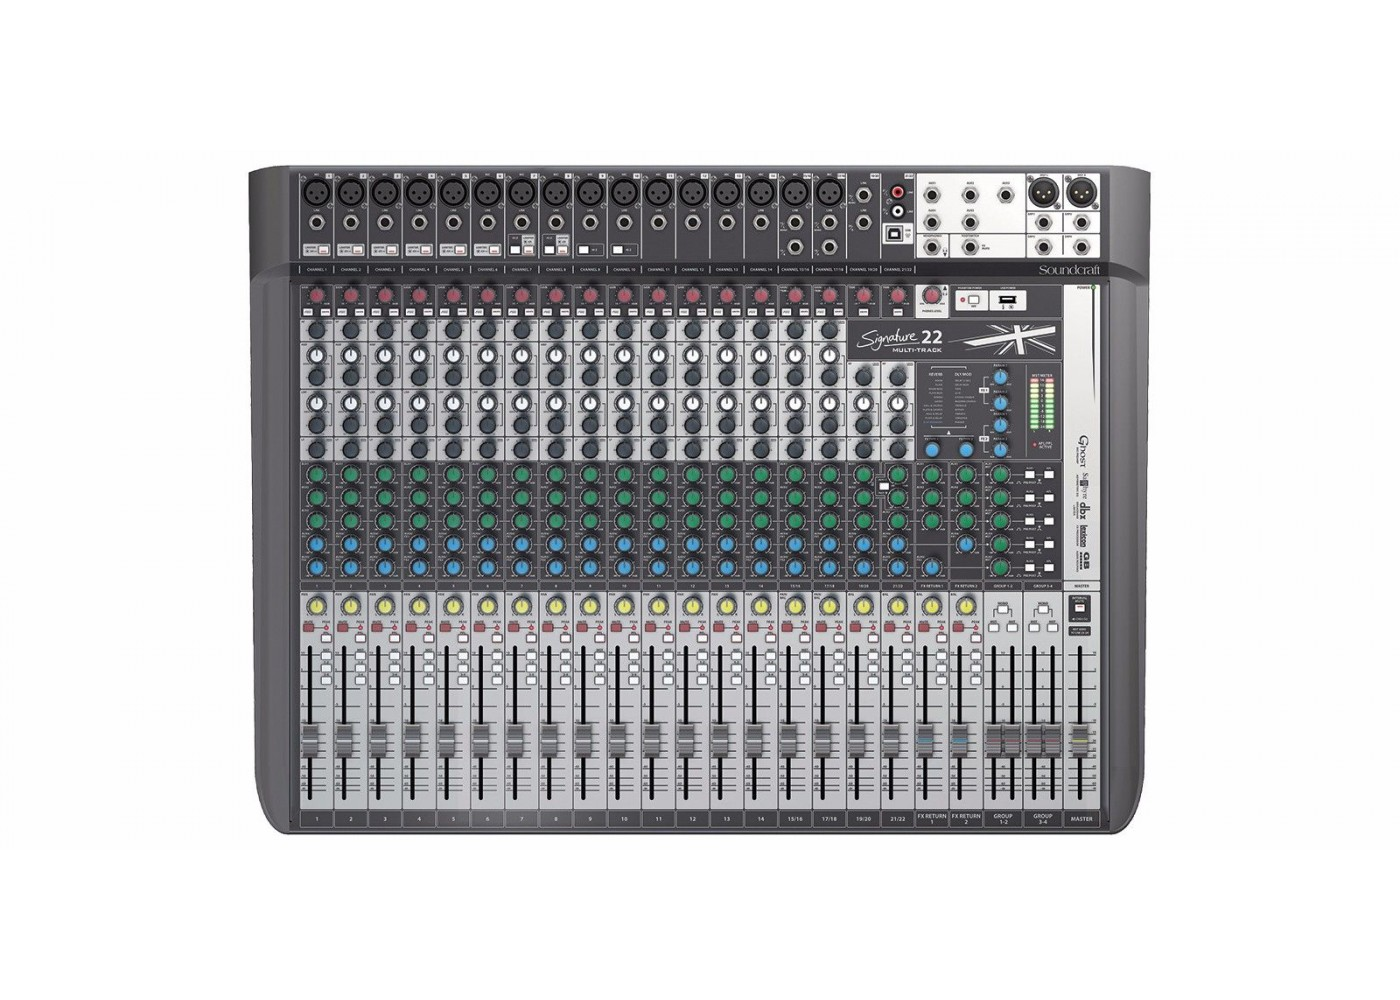 soundcraft signature 22 mtk mixing console built in lexicon effects. Black Bedroom Furniture Sets. Home Design Ideas